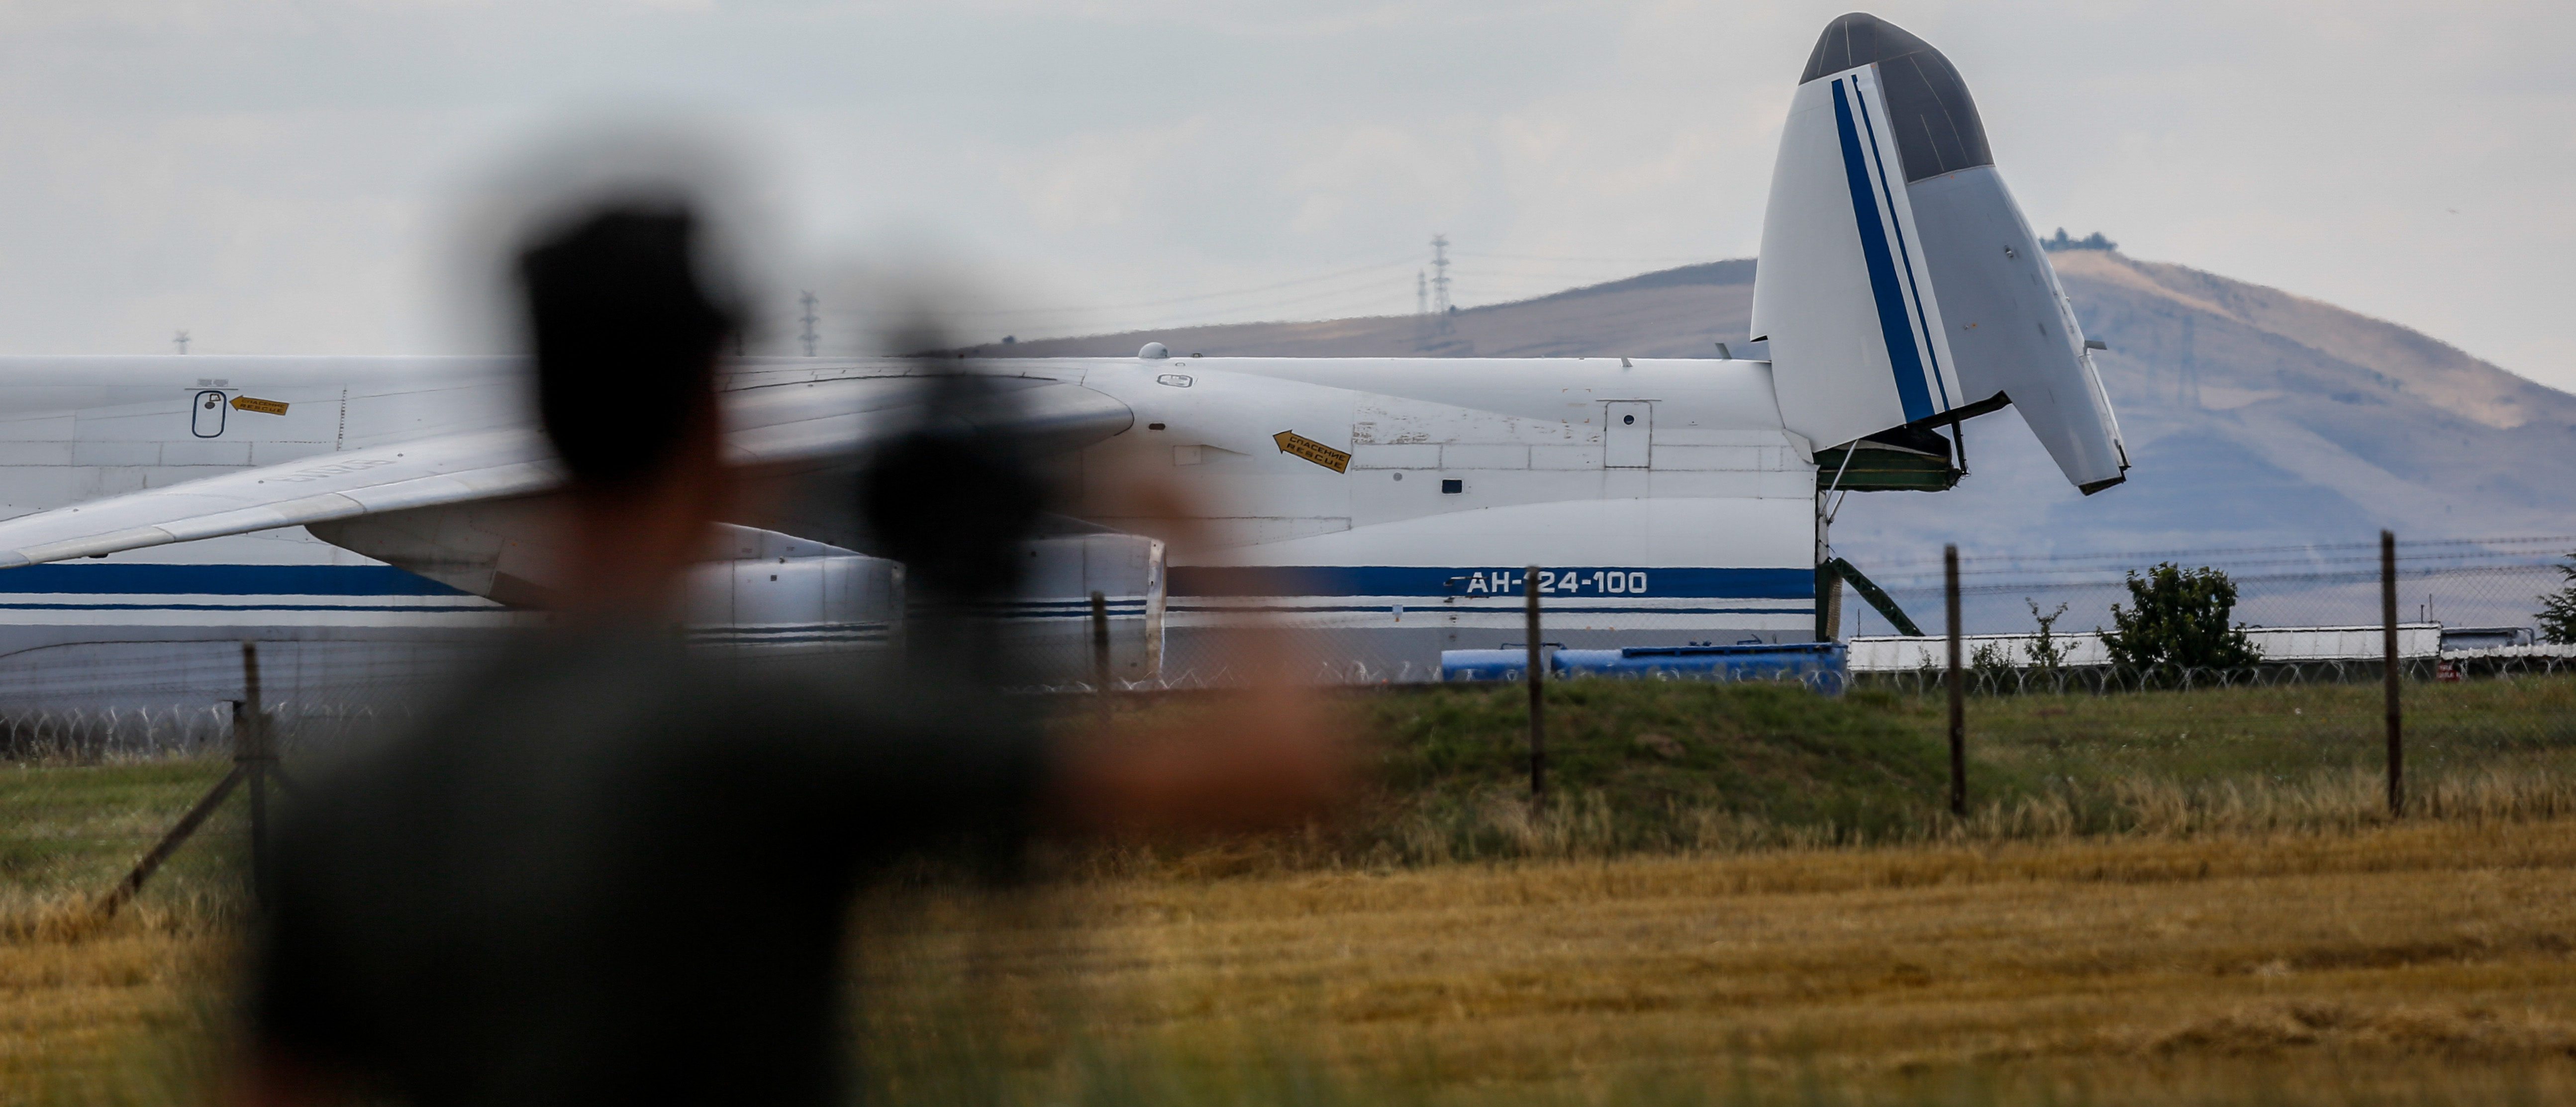 Cargo is unloaded from a Russian AN-124 cargo plane transporting parts of the S-400 air defence system from Russia, after it landed at Murted Airfield on July 12, 2019 in Ankara, Turkey. The Turkish Defence Ministry confirmed the first delivery of components for the Russian S-400 air defence system to Turkey. The United States has warned Turkey that the S-400 deal could put it at risk of sanctions and expulsion from the Pentagon's F-35 fighter jet programme. (Photo by Mustafa Kirazli/Getty Images)